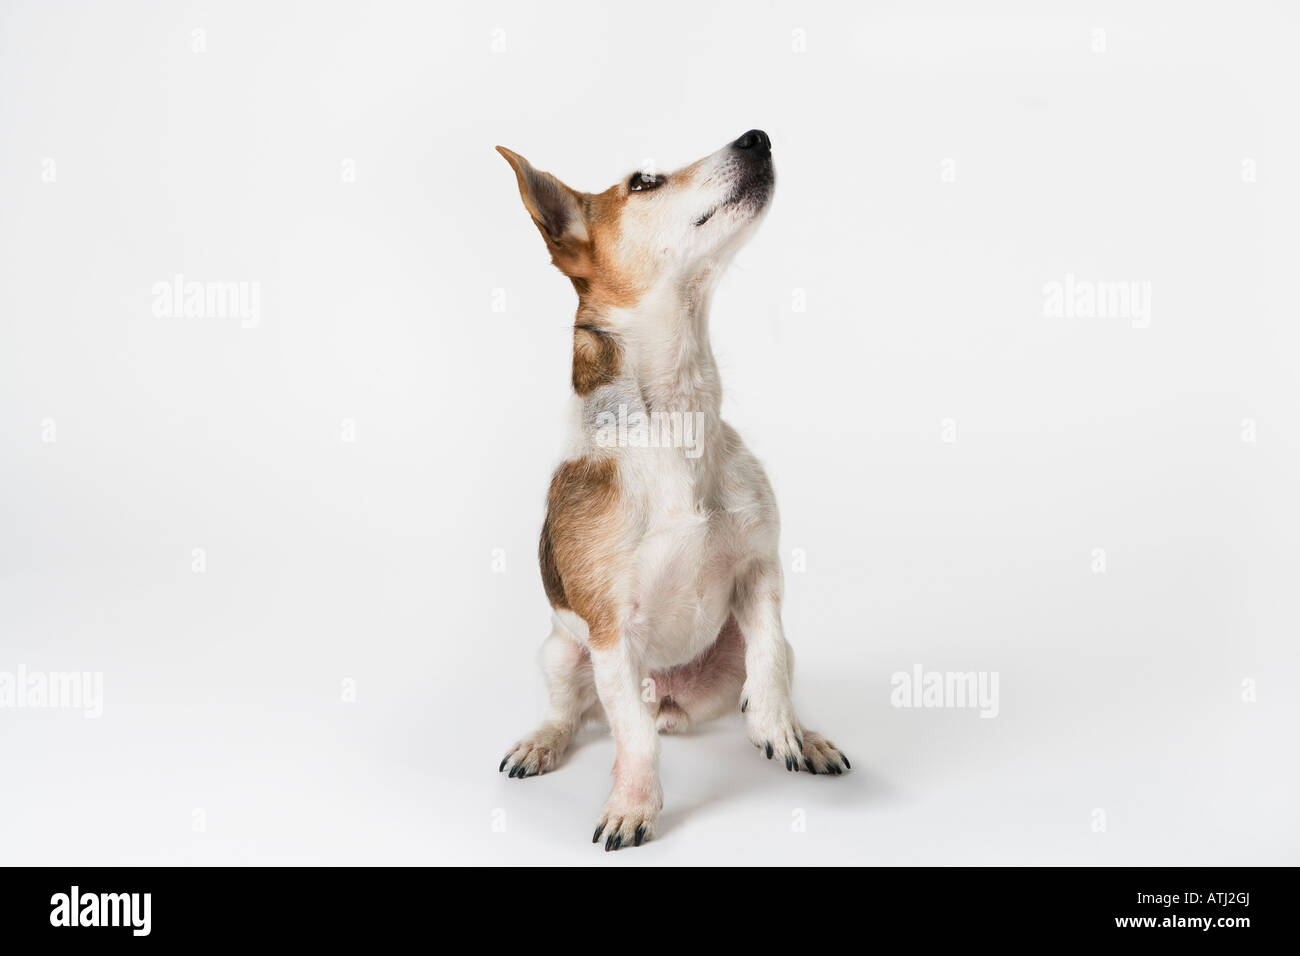 dog looking up - Stock Image